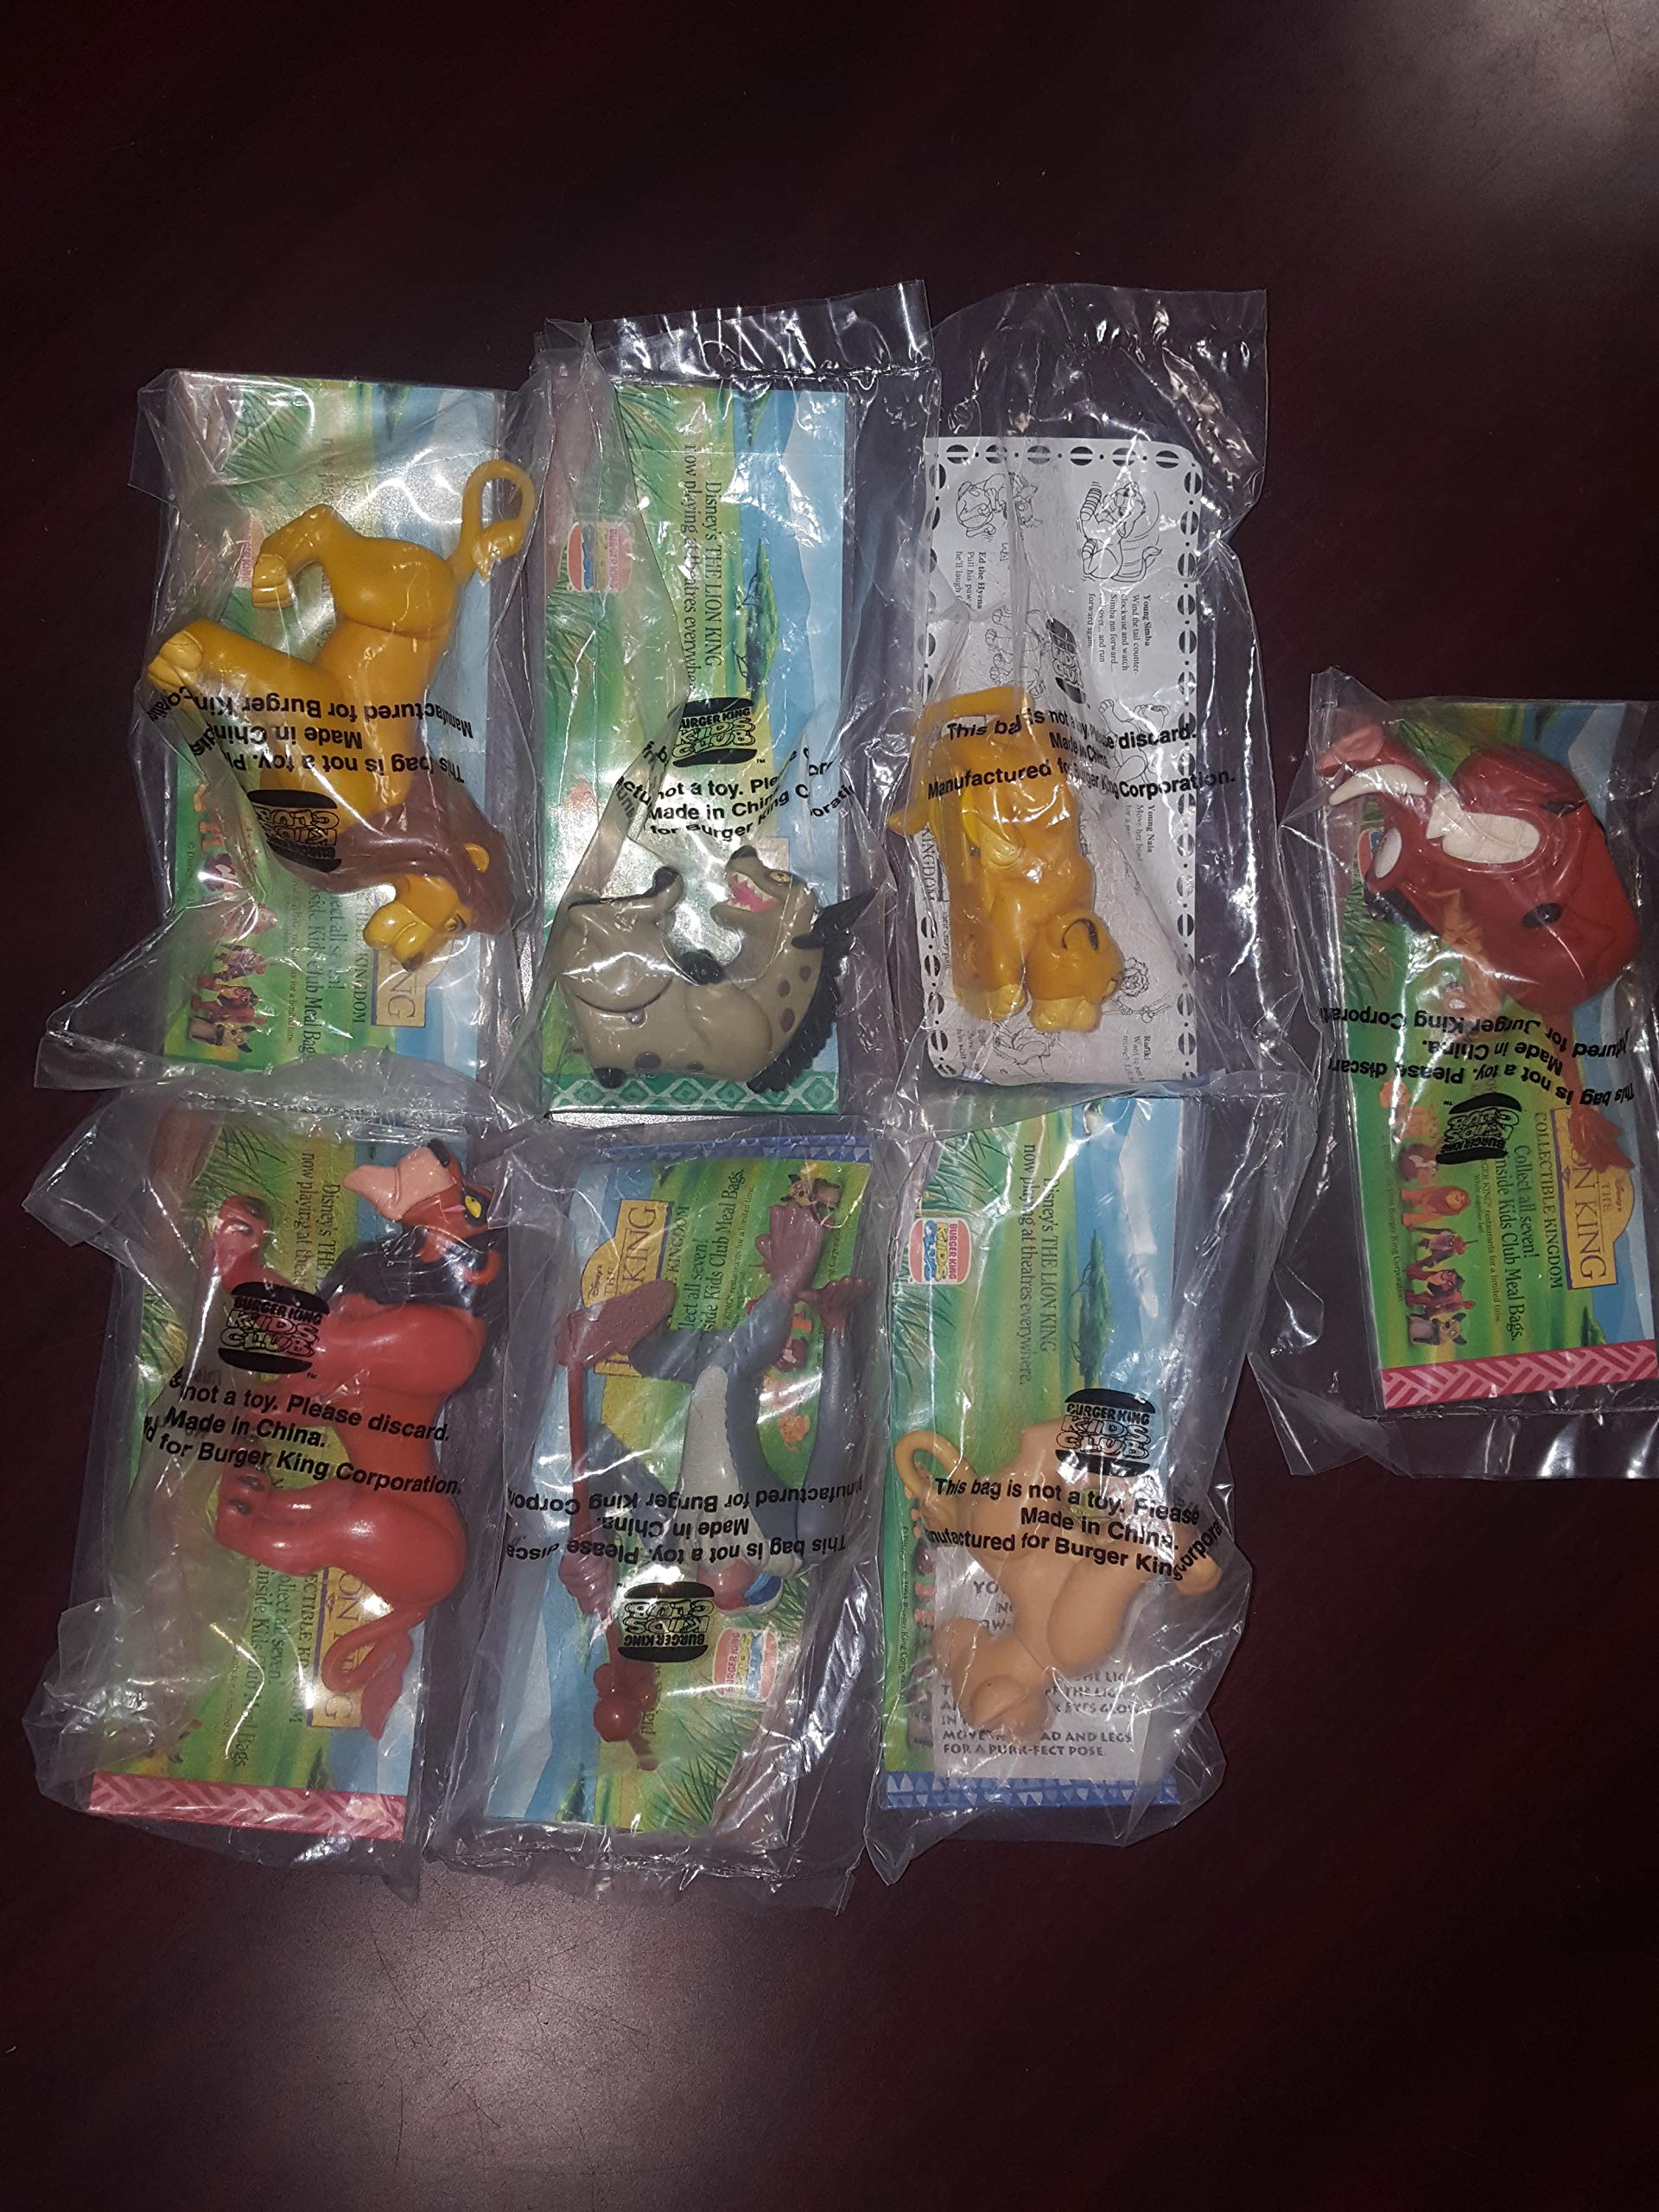 Burger King 1994 Complete Set of The Lion King, 4 Whopper Bags & Place Mat (Very Rare) by Burger King